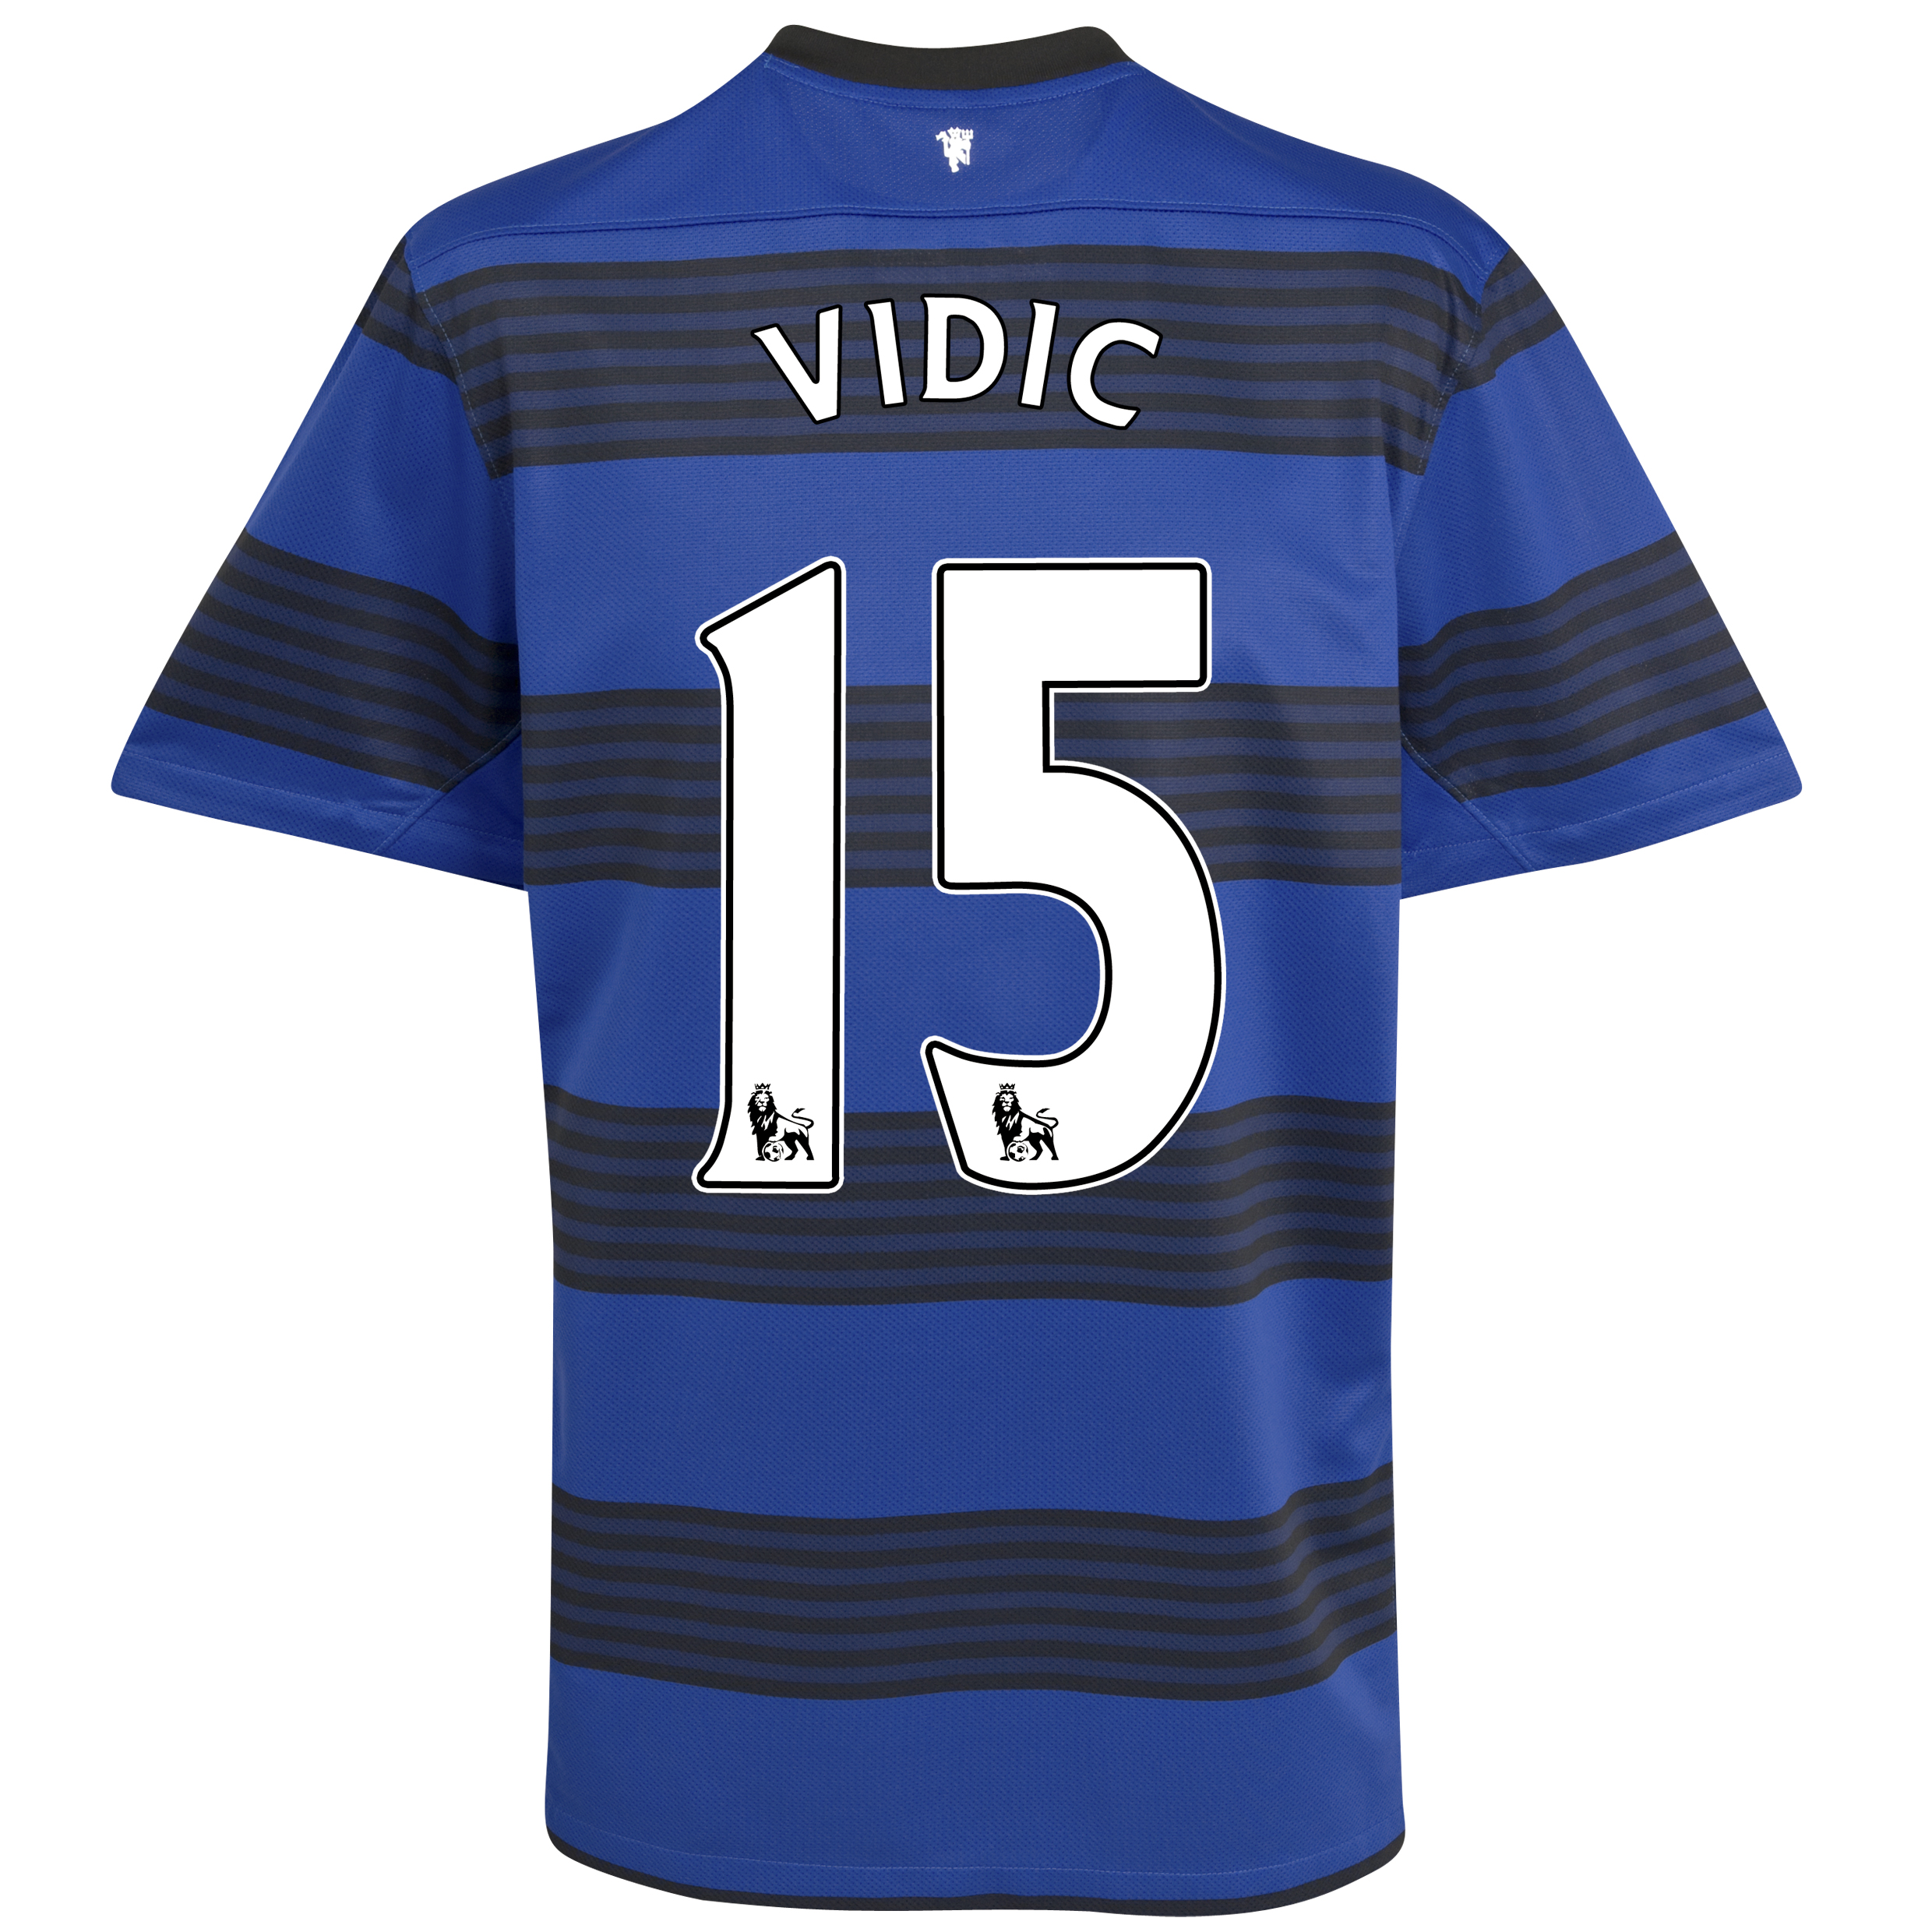 Manchester United Away Shirt 2011/12 with Vidic 15 printing